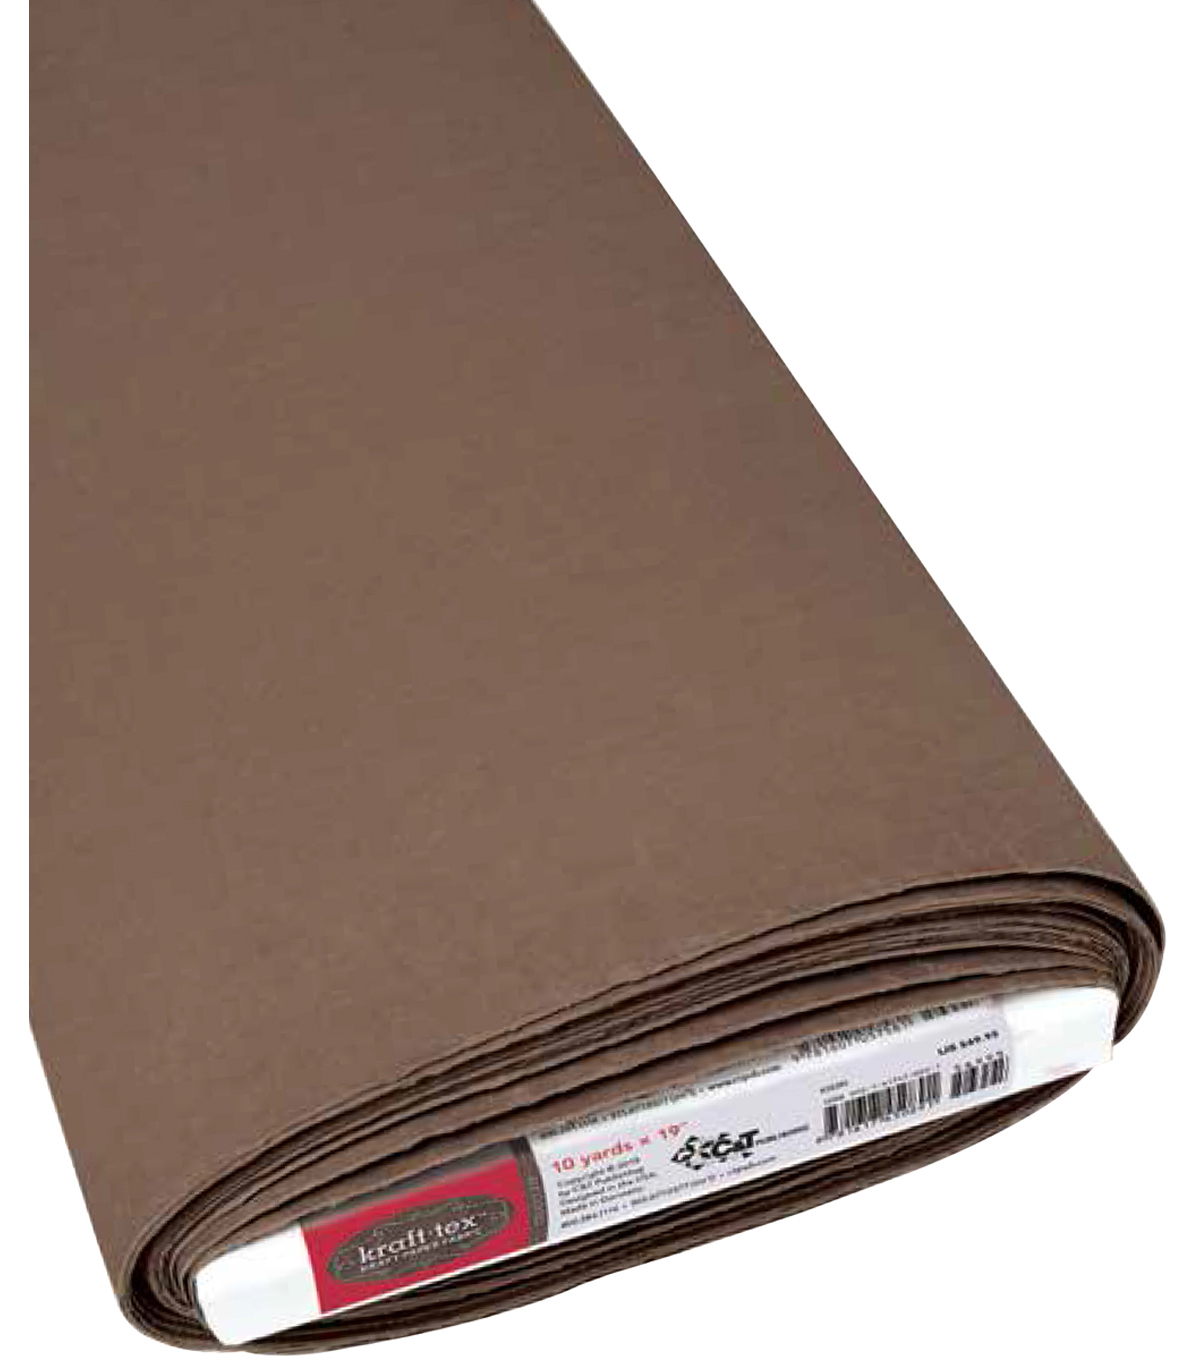 C&T Publishing Kraft-Tex Kraft Paper Fabric 19\u0027\u0027x10 yds, Chocolate